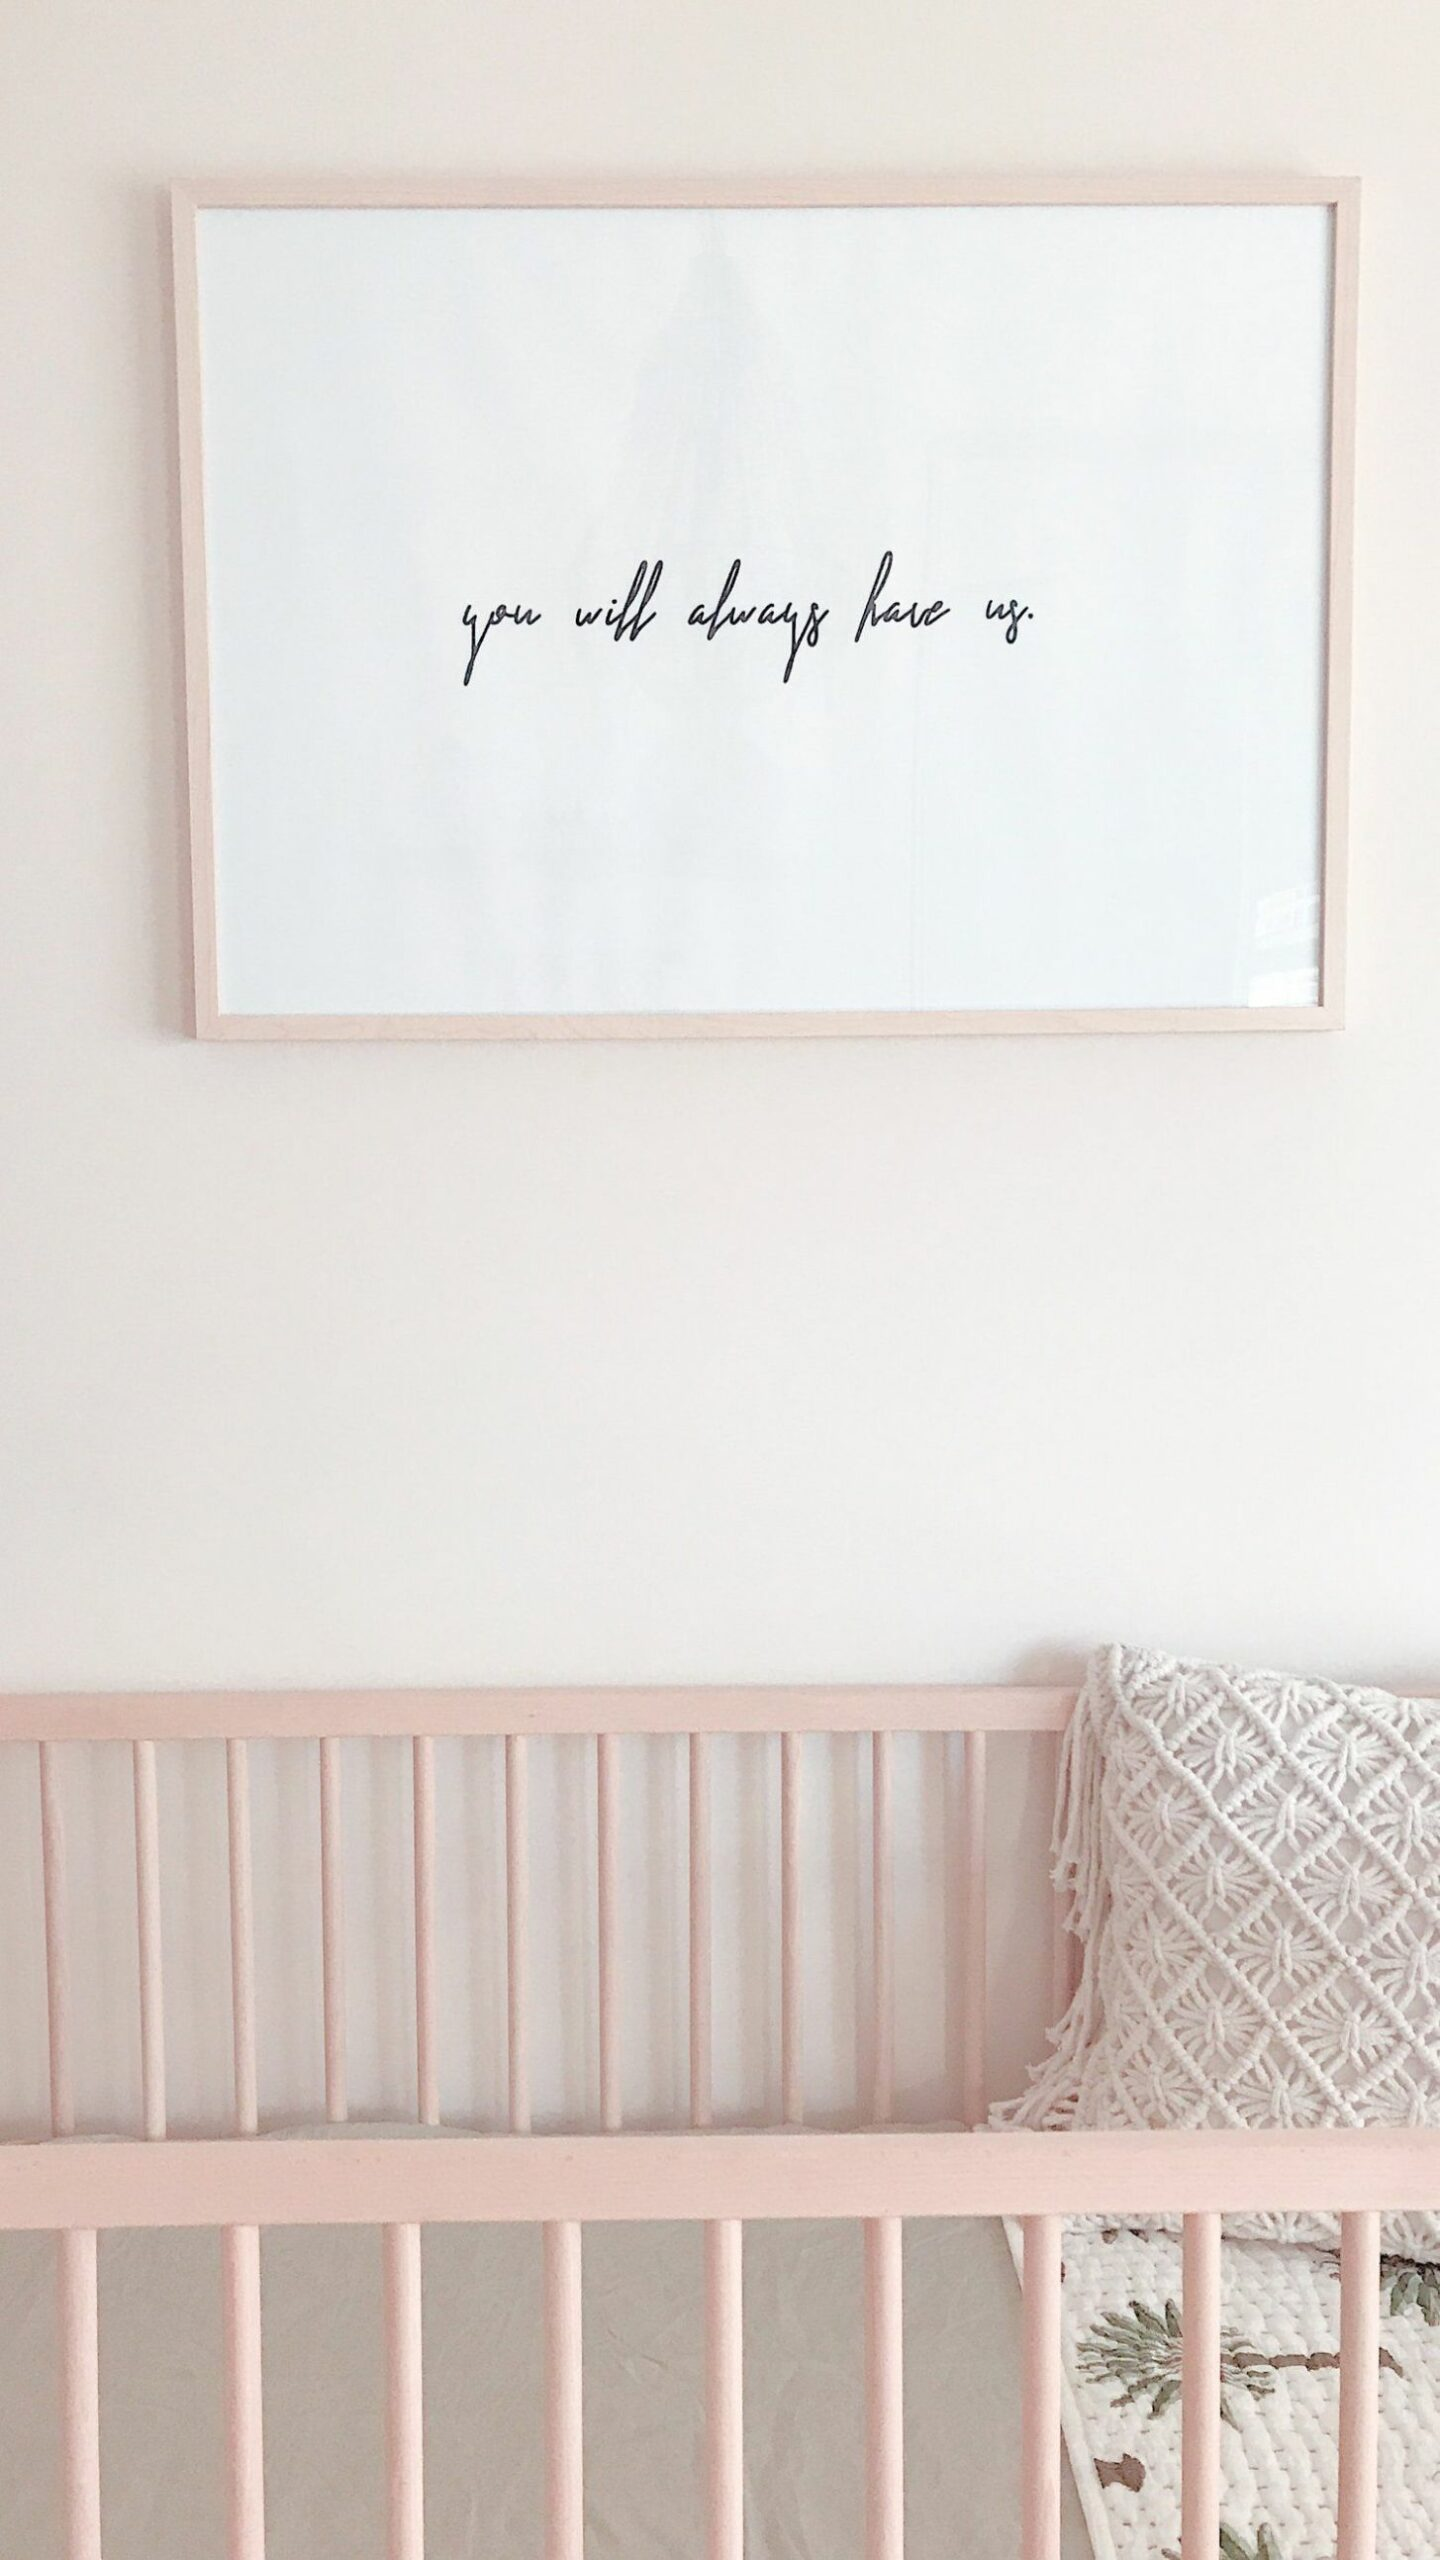 nursery room decor baby quotes #nurserydecor #baby #quotes (With ...